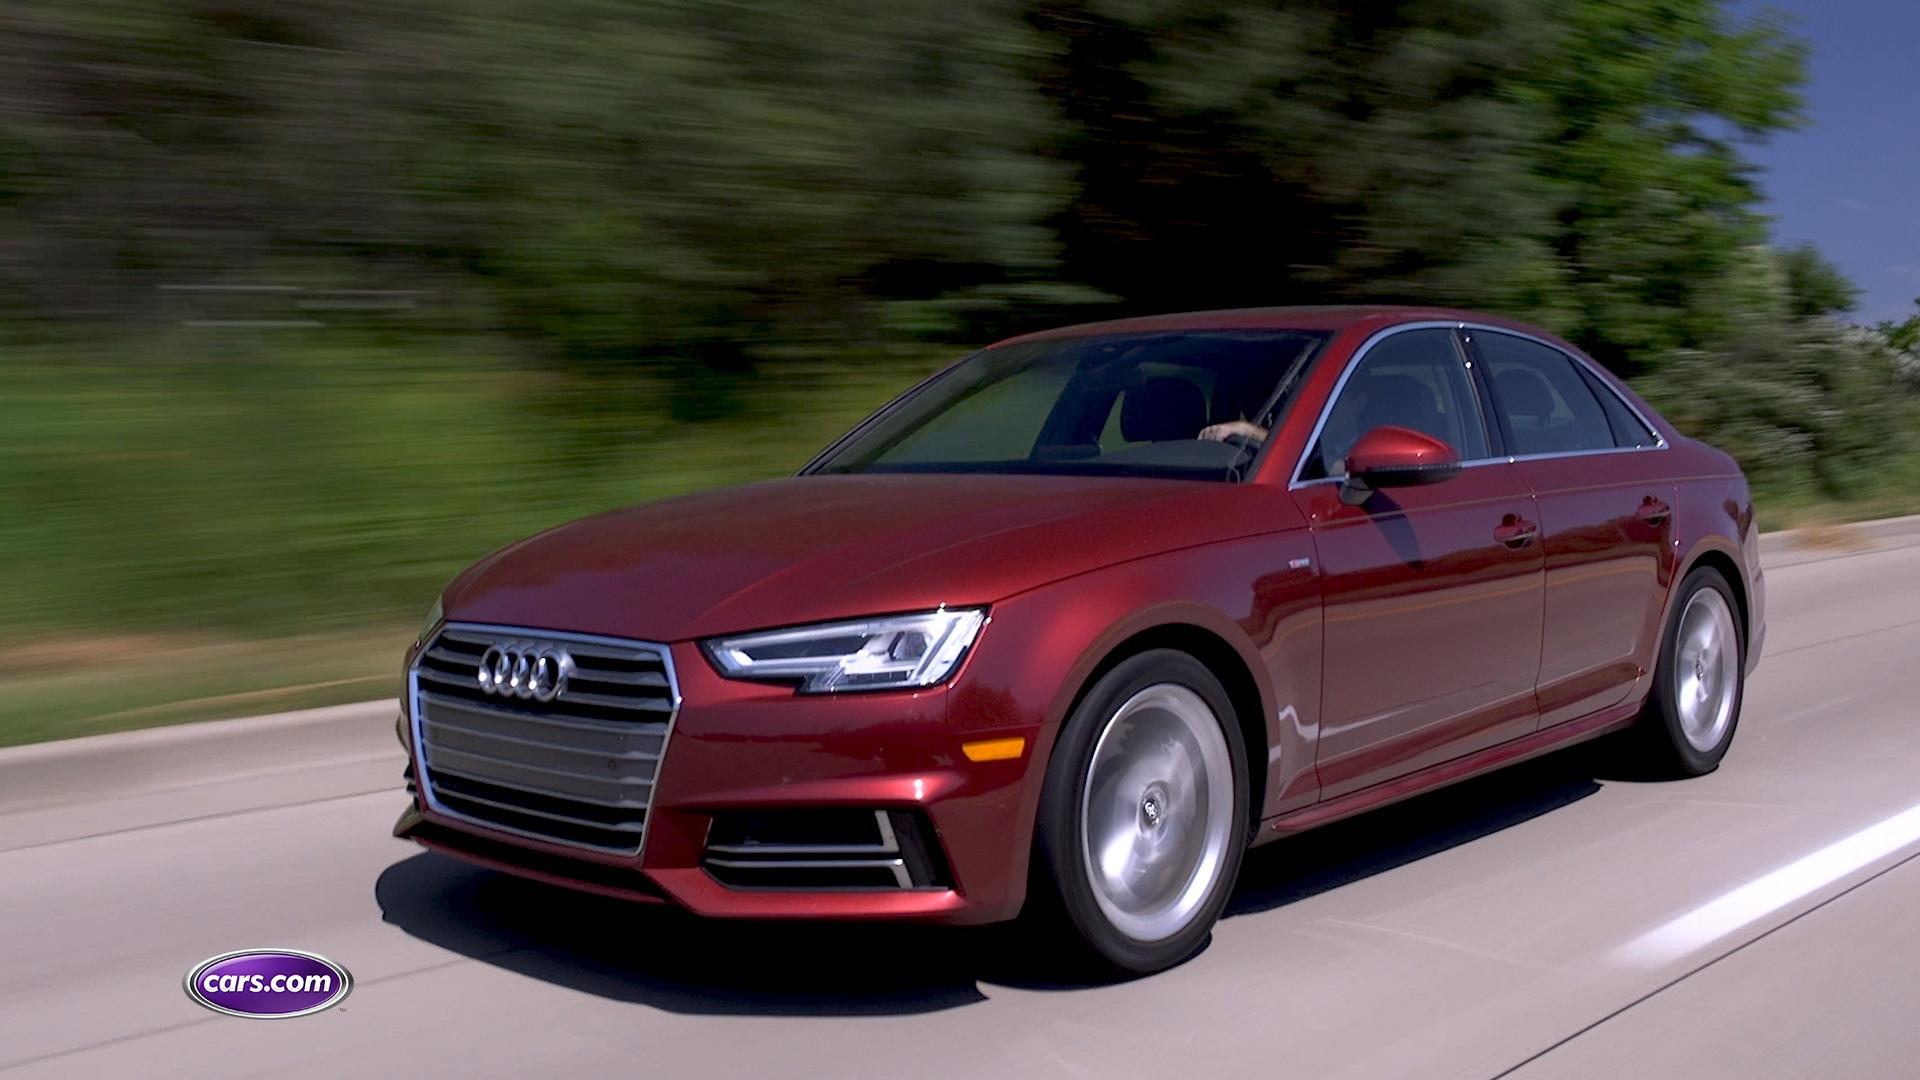 Video: What Makes the 2018 Audi A4 a Winner? — Cars.com